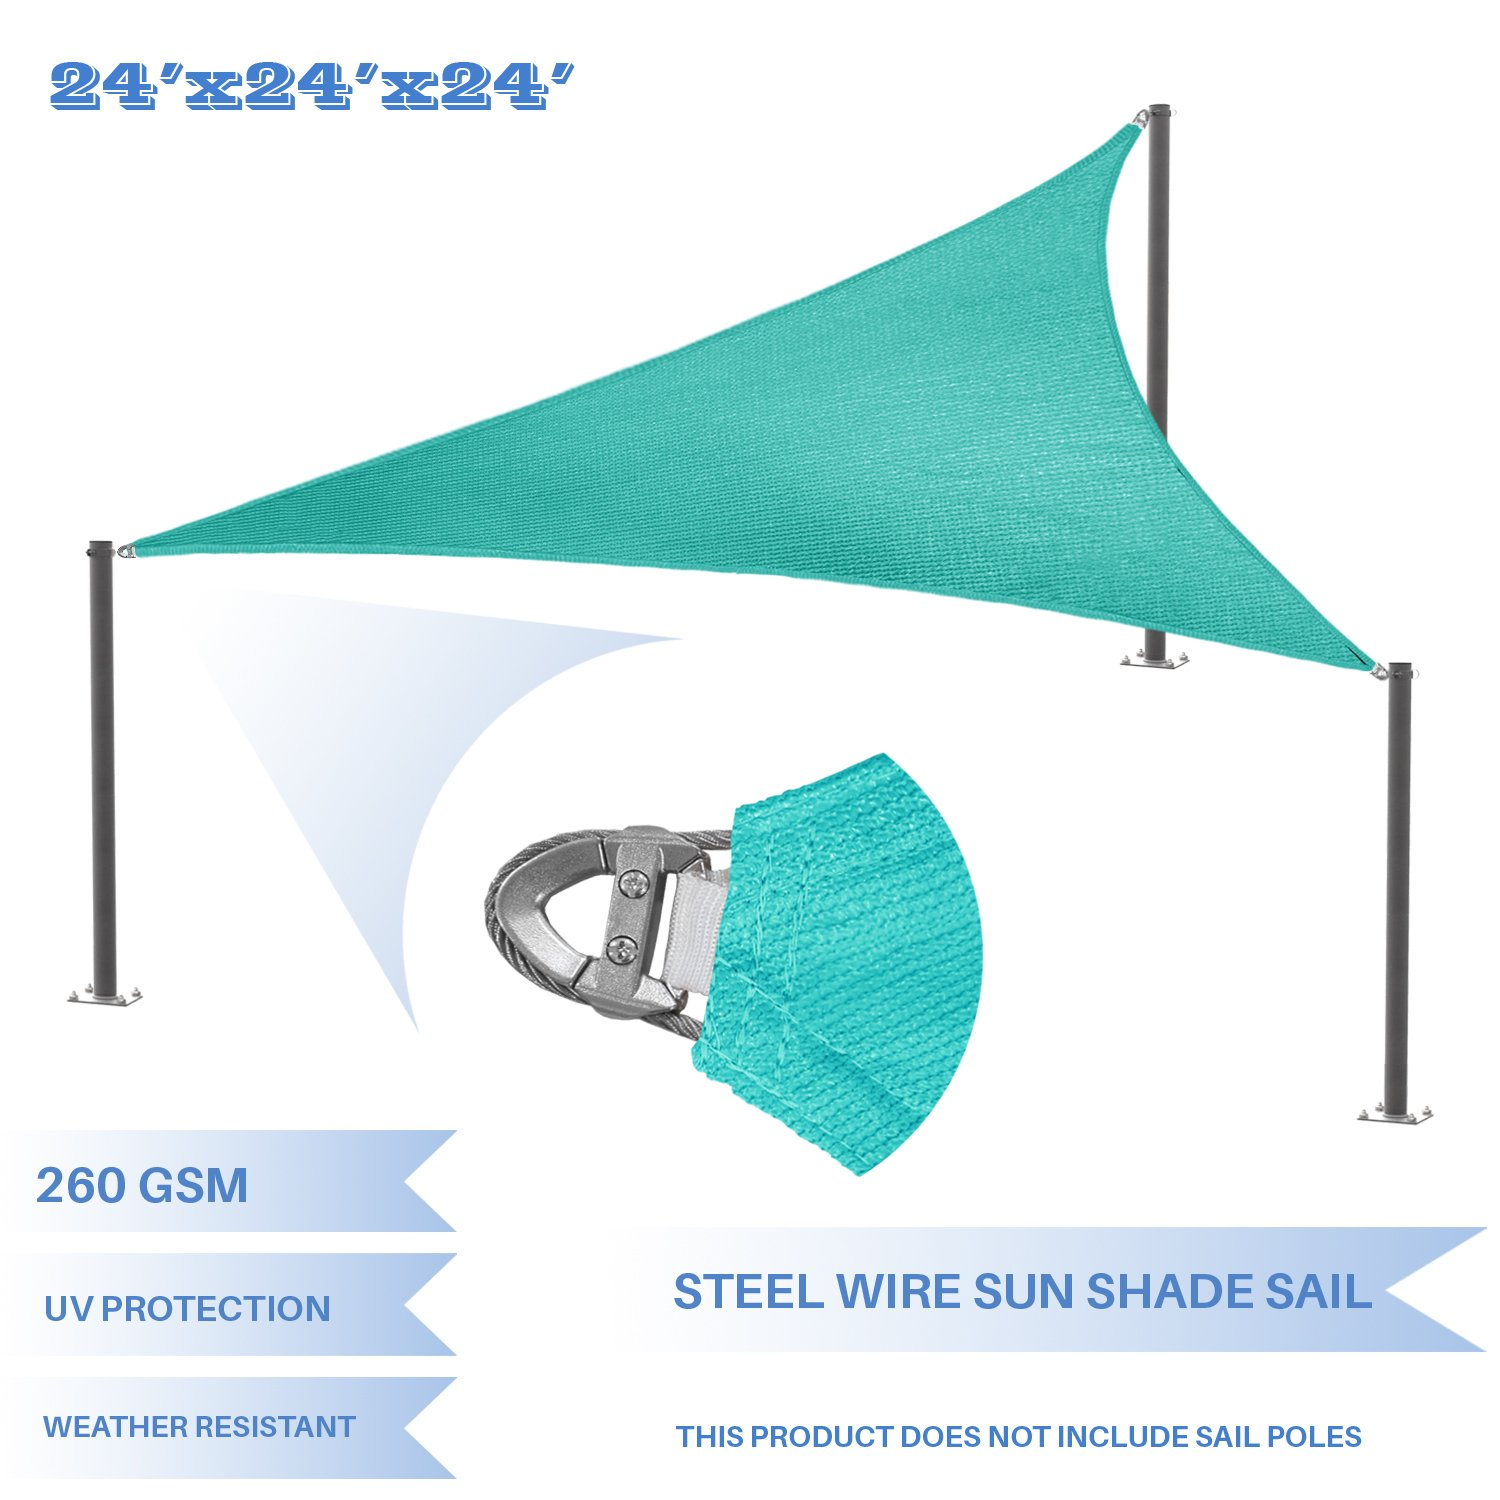 E K Sunrise Reinforcement Large Sun Shade Sail 24 x 24 x 24 Equilateral Triangle Heavy Duty Strengthen Durable Outdoor Garden Canopy UV Block Fabric 260GSM – 7 Year Warranty – Turquoise Green